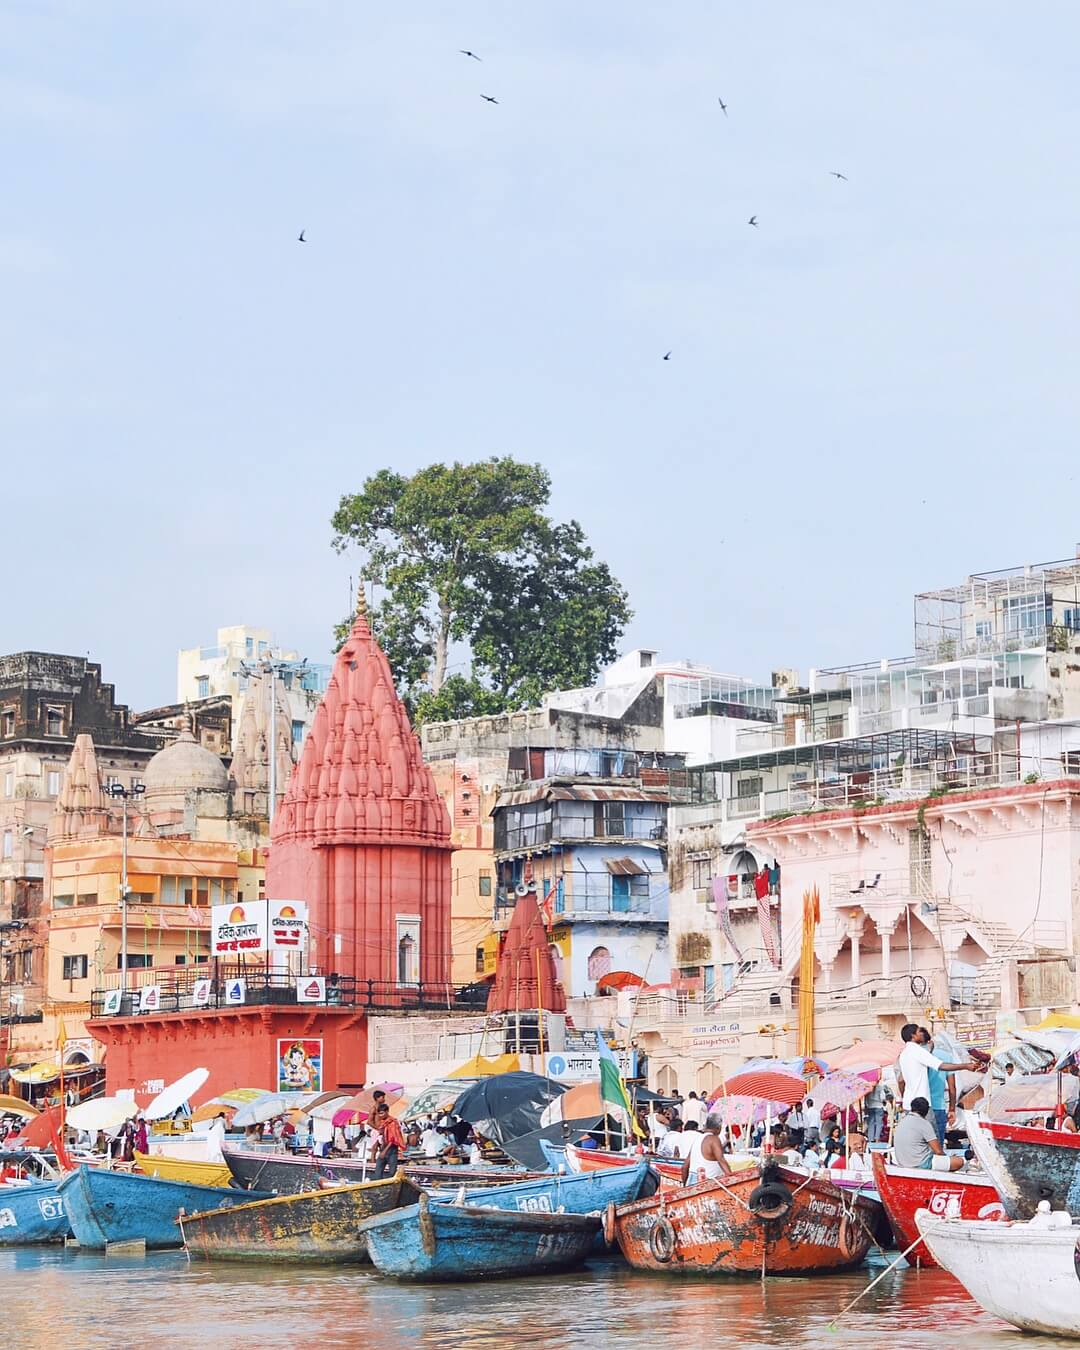 Vibrant Varanasi with boats, colourful buildings and more